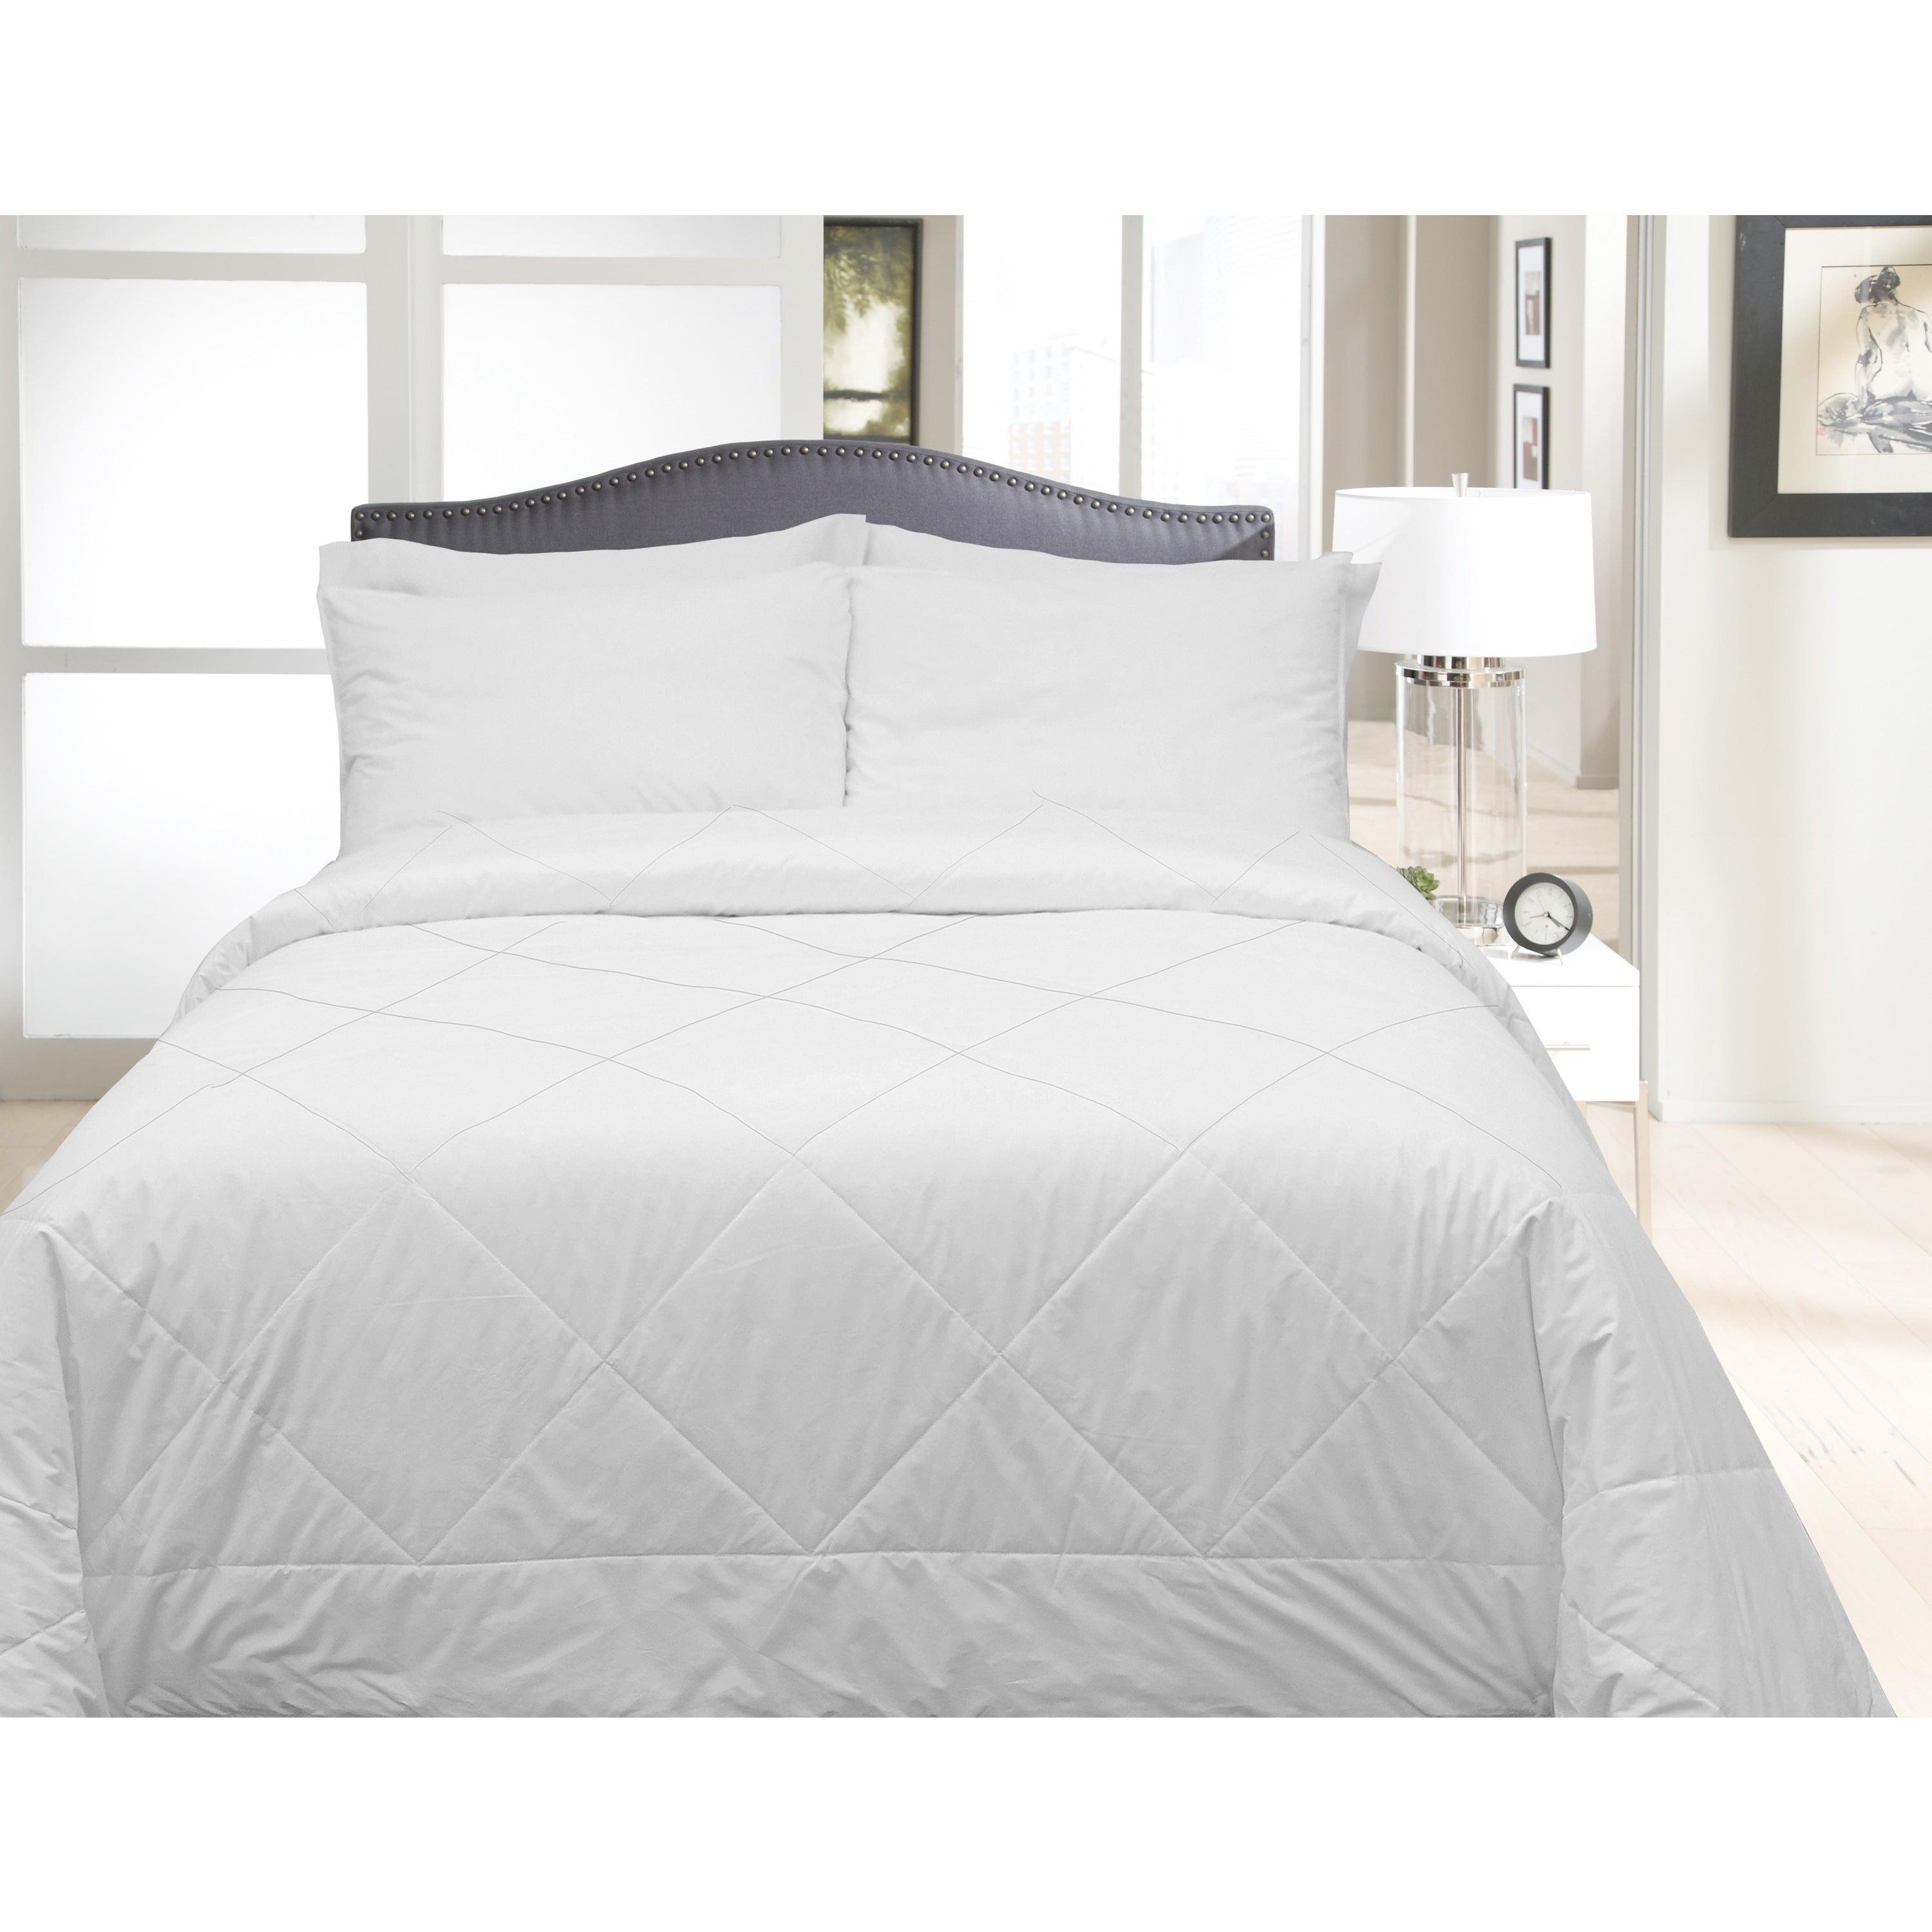 comforter duvet specialists in cover standard mulberry of amp cupboard luxury bestduvetcovers reviews club linen non from bedding silk